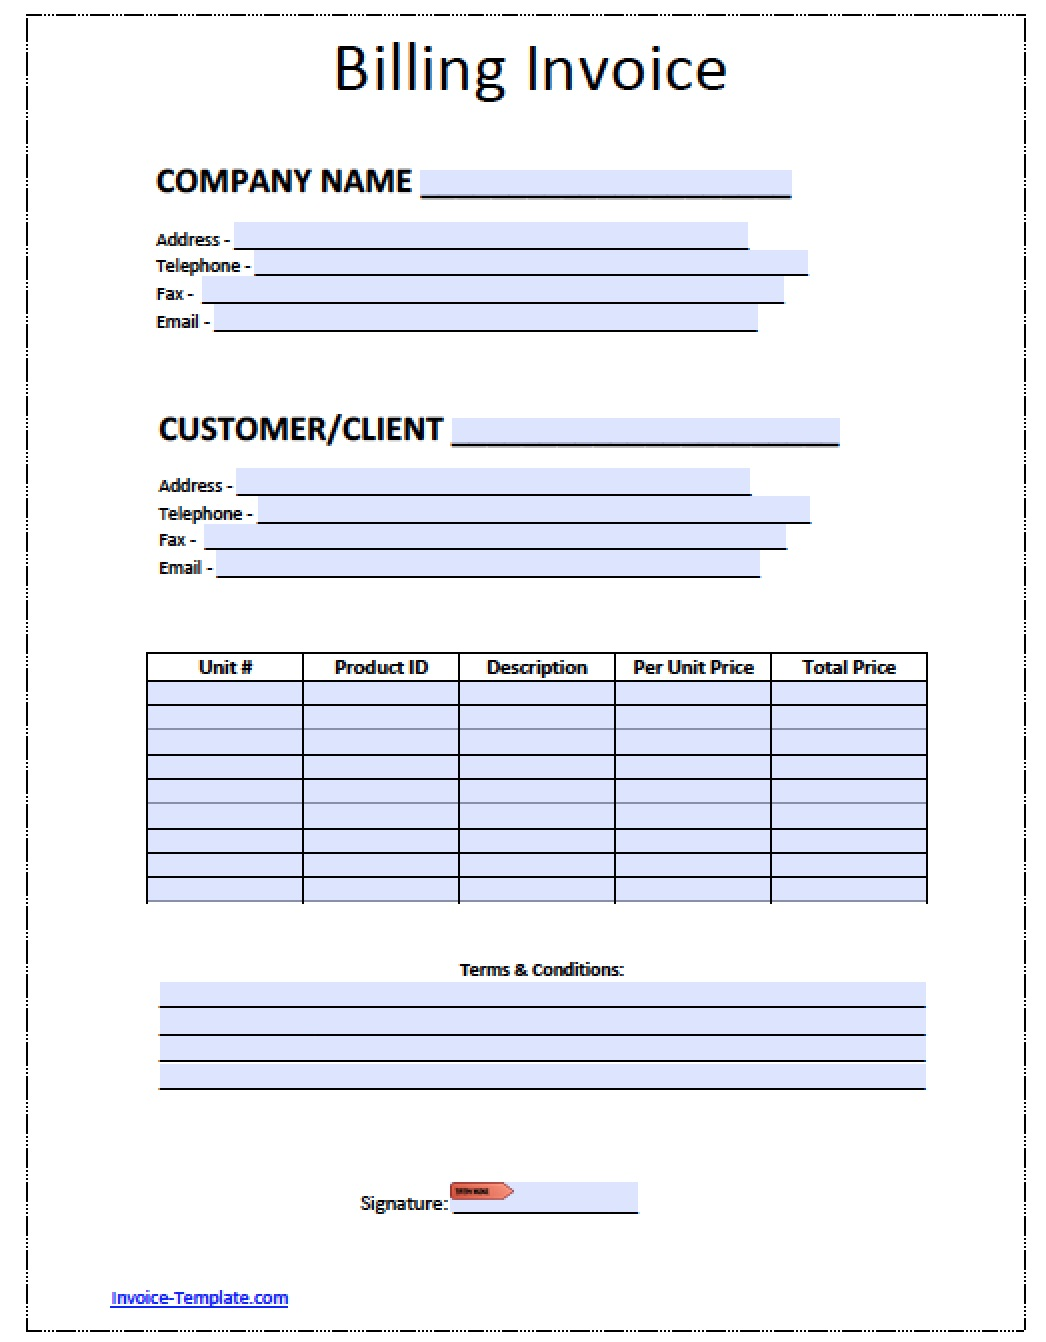 Darkfaderus  Seductive Billing Invoice Invoices Faq U Cloudflare Support Billing  With Inspiring Free Billing Invoice Template  Excel  Pdf  Word Doc  Billing With Comely How To Find New Car Invoice Price Also Acura Tl Invoice Price In Addition Free Invoice Templets And Free Blank Printable Invoices Forms As Well As Invoice Software Free Download Additionally Invoice Templates For Quickbooks From Happytomco With Darkfaderus  Inspiring Billing Invoice Invoices Faq U Cloudflare Support Billing  With Comely Free Billing Invoice Template  Excel  Pdf  Word Doc  Billing And Seductive How To Find New Car Invoice Price Also Acura Tl Invoice Price In Addition Free Invoice Templets From Happytomco